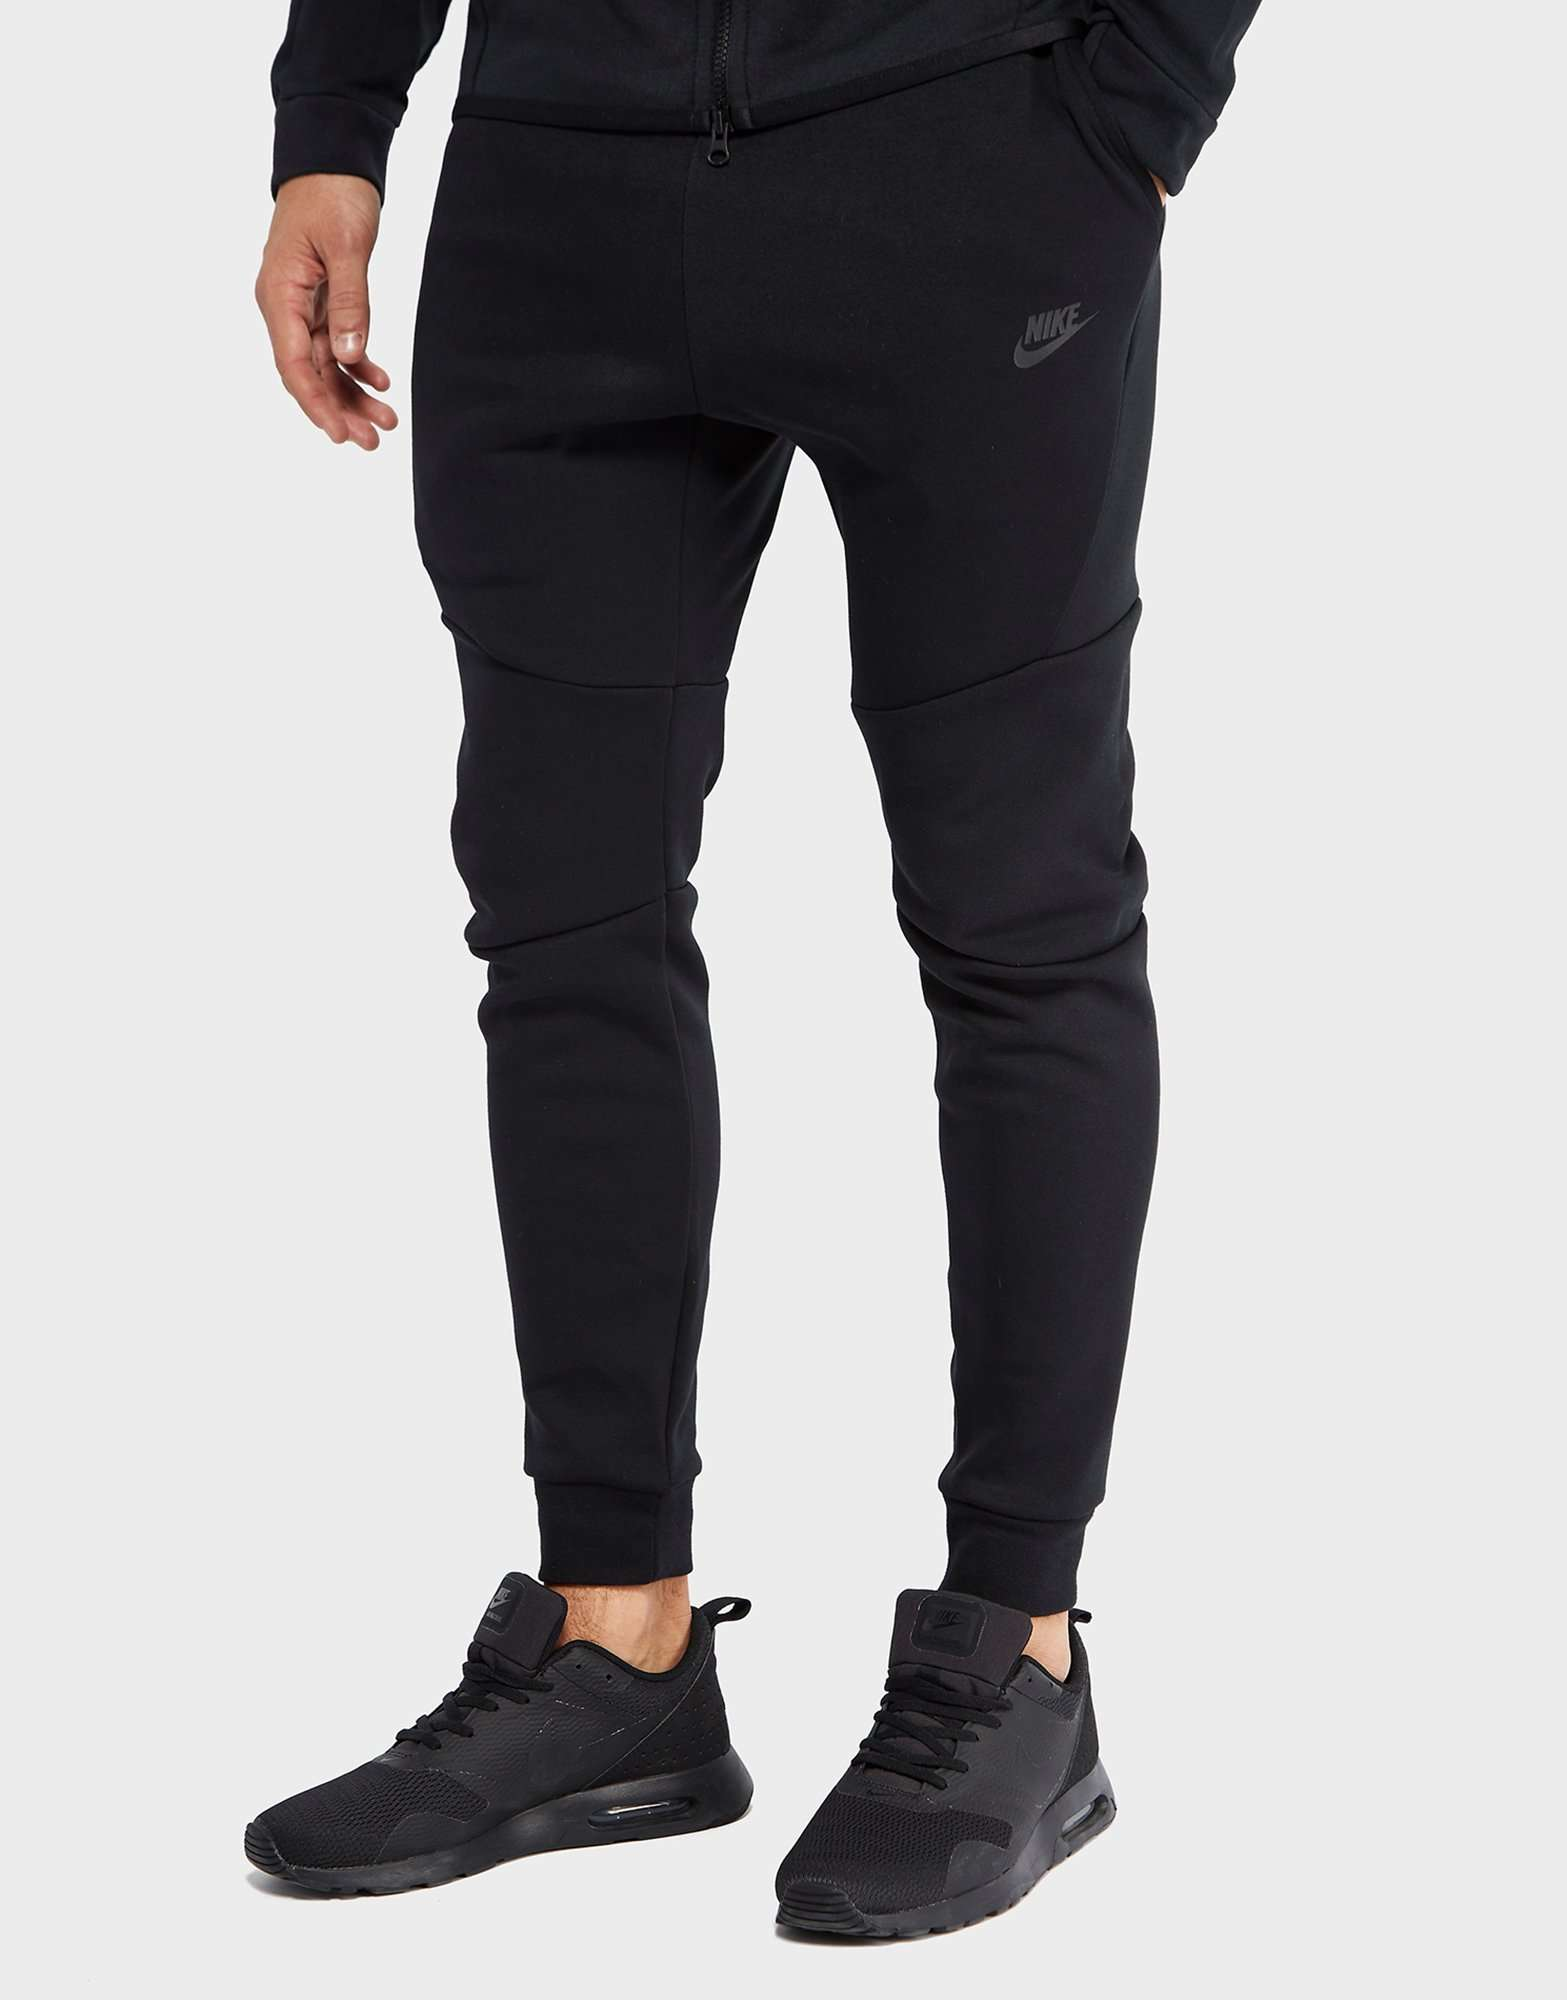 nike tech fleece pants scotts menswear. Black Bedroom Furniture Sets. Home Design Ideas